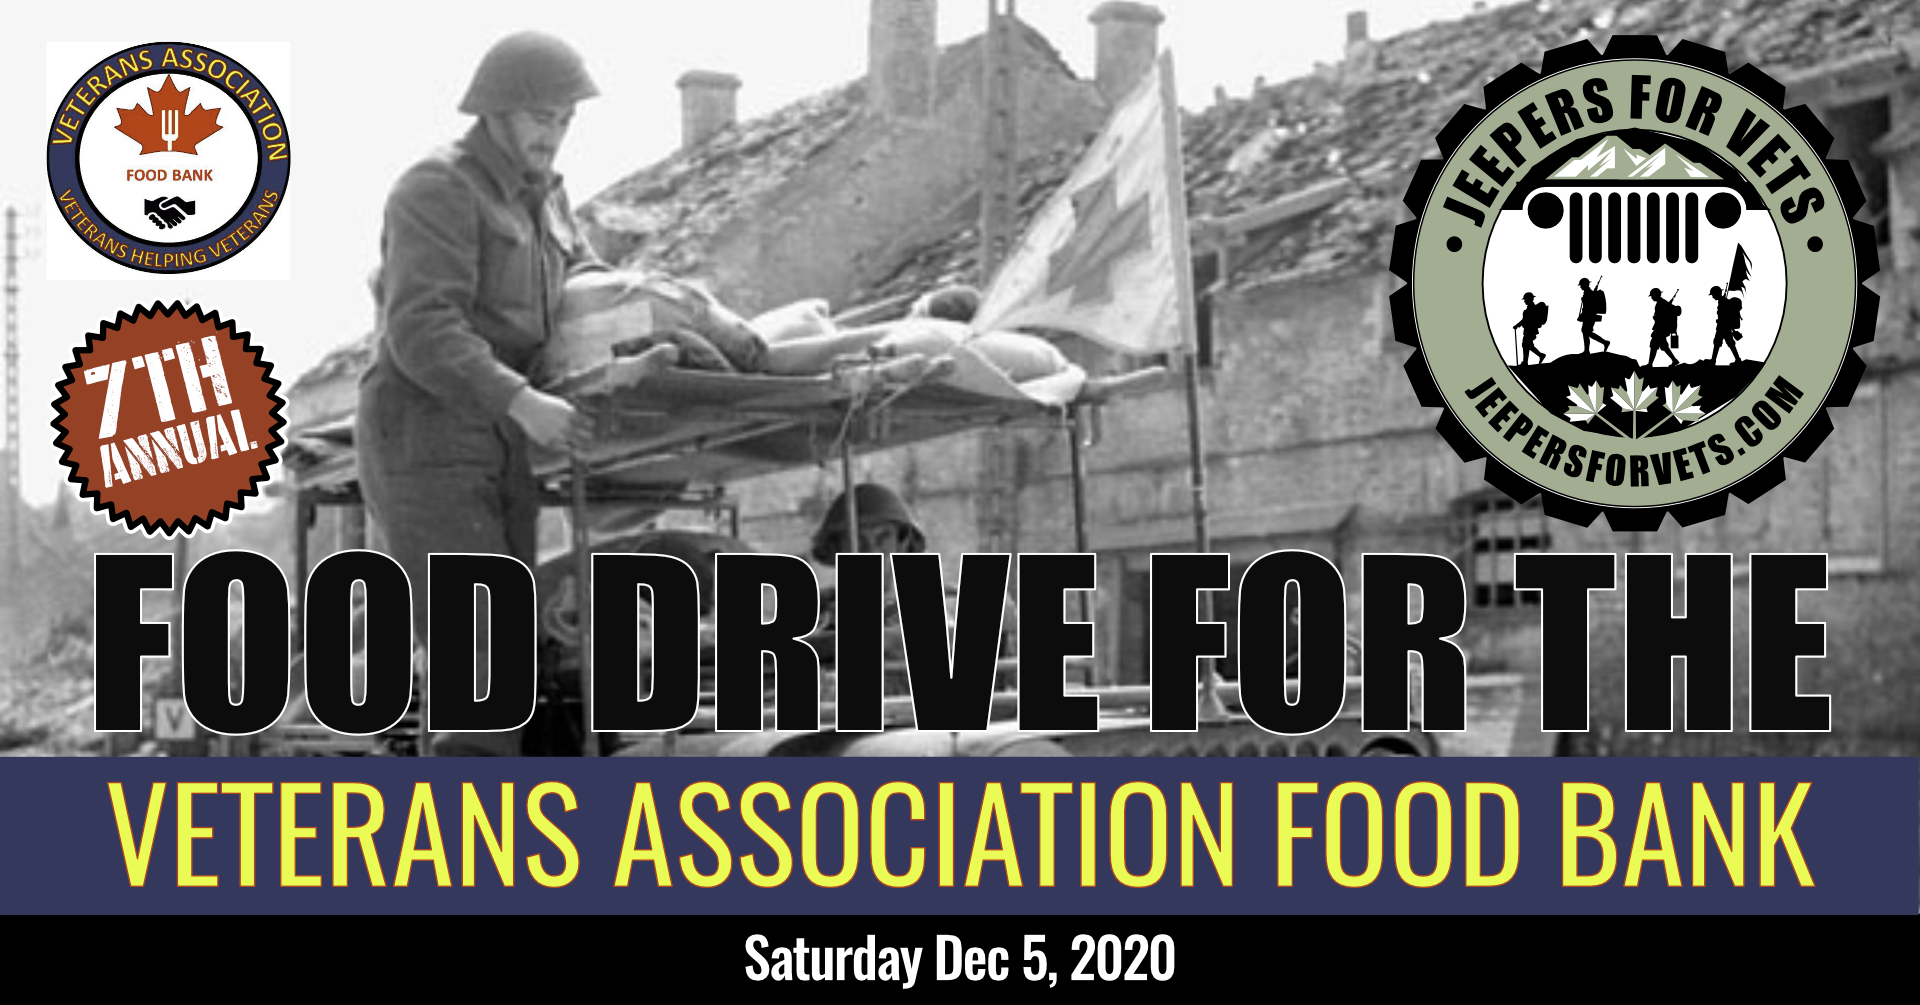 2020 Year End Food Drive